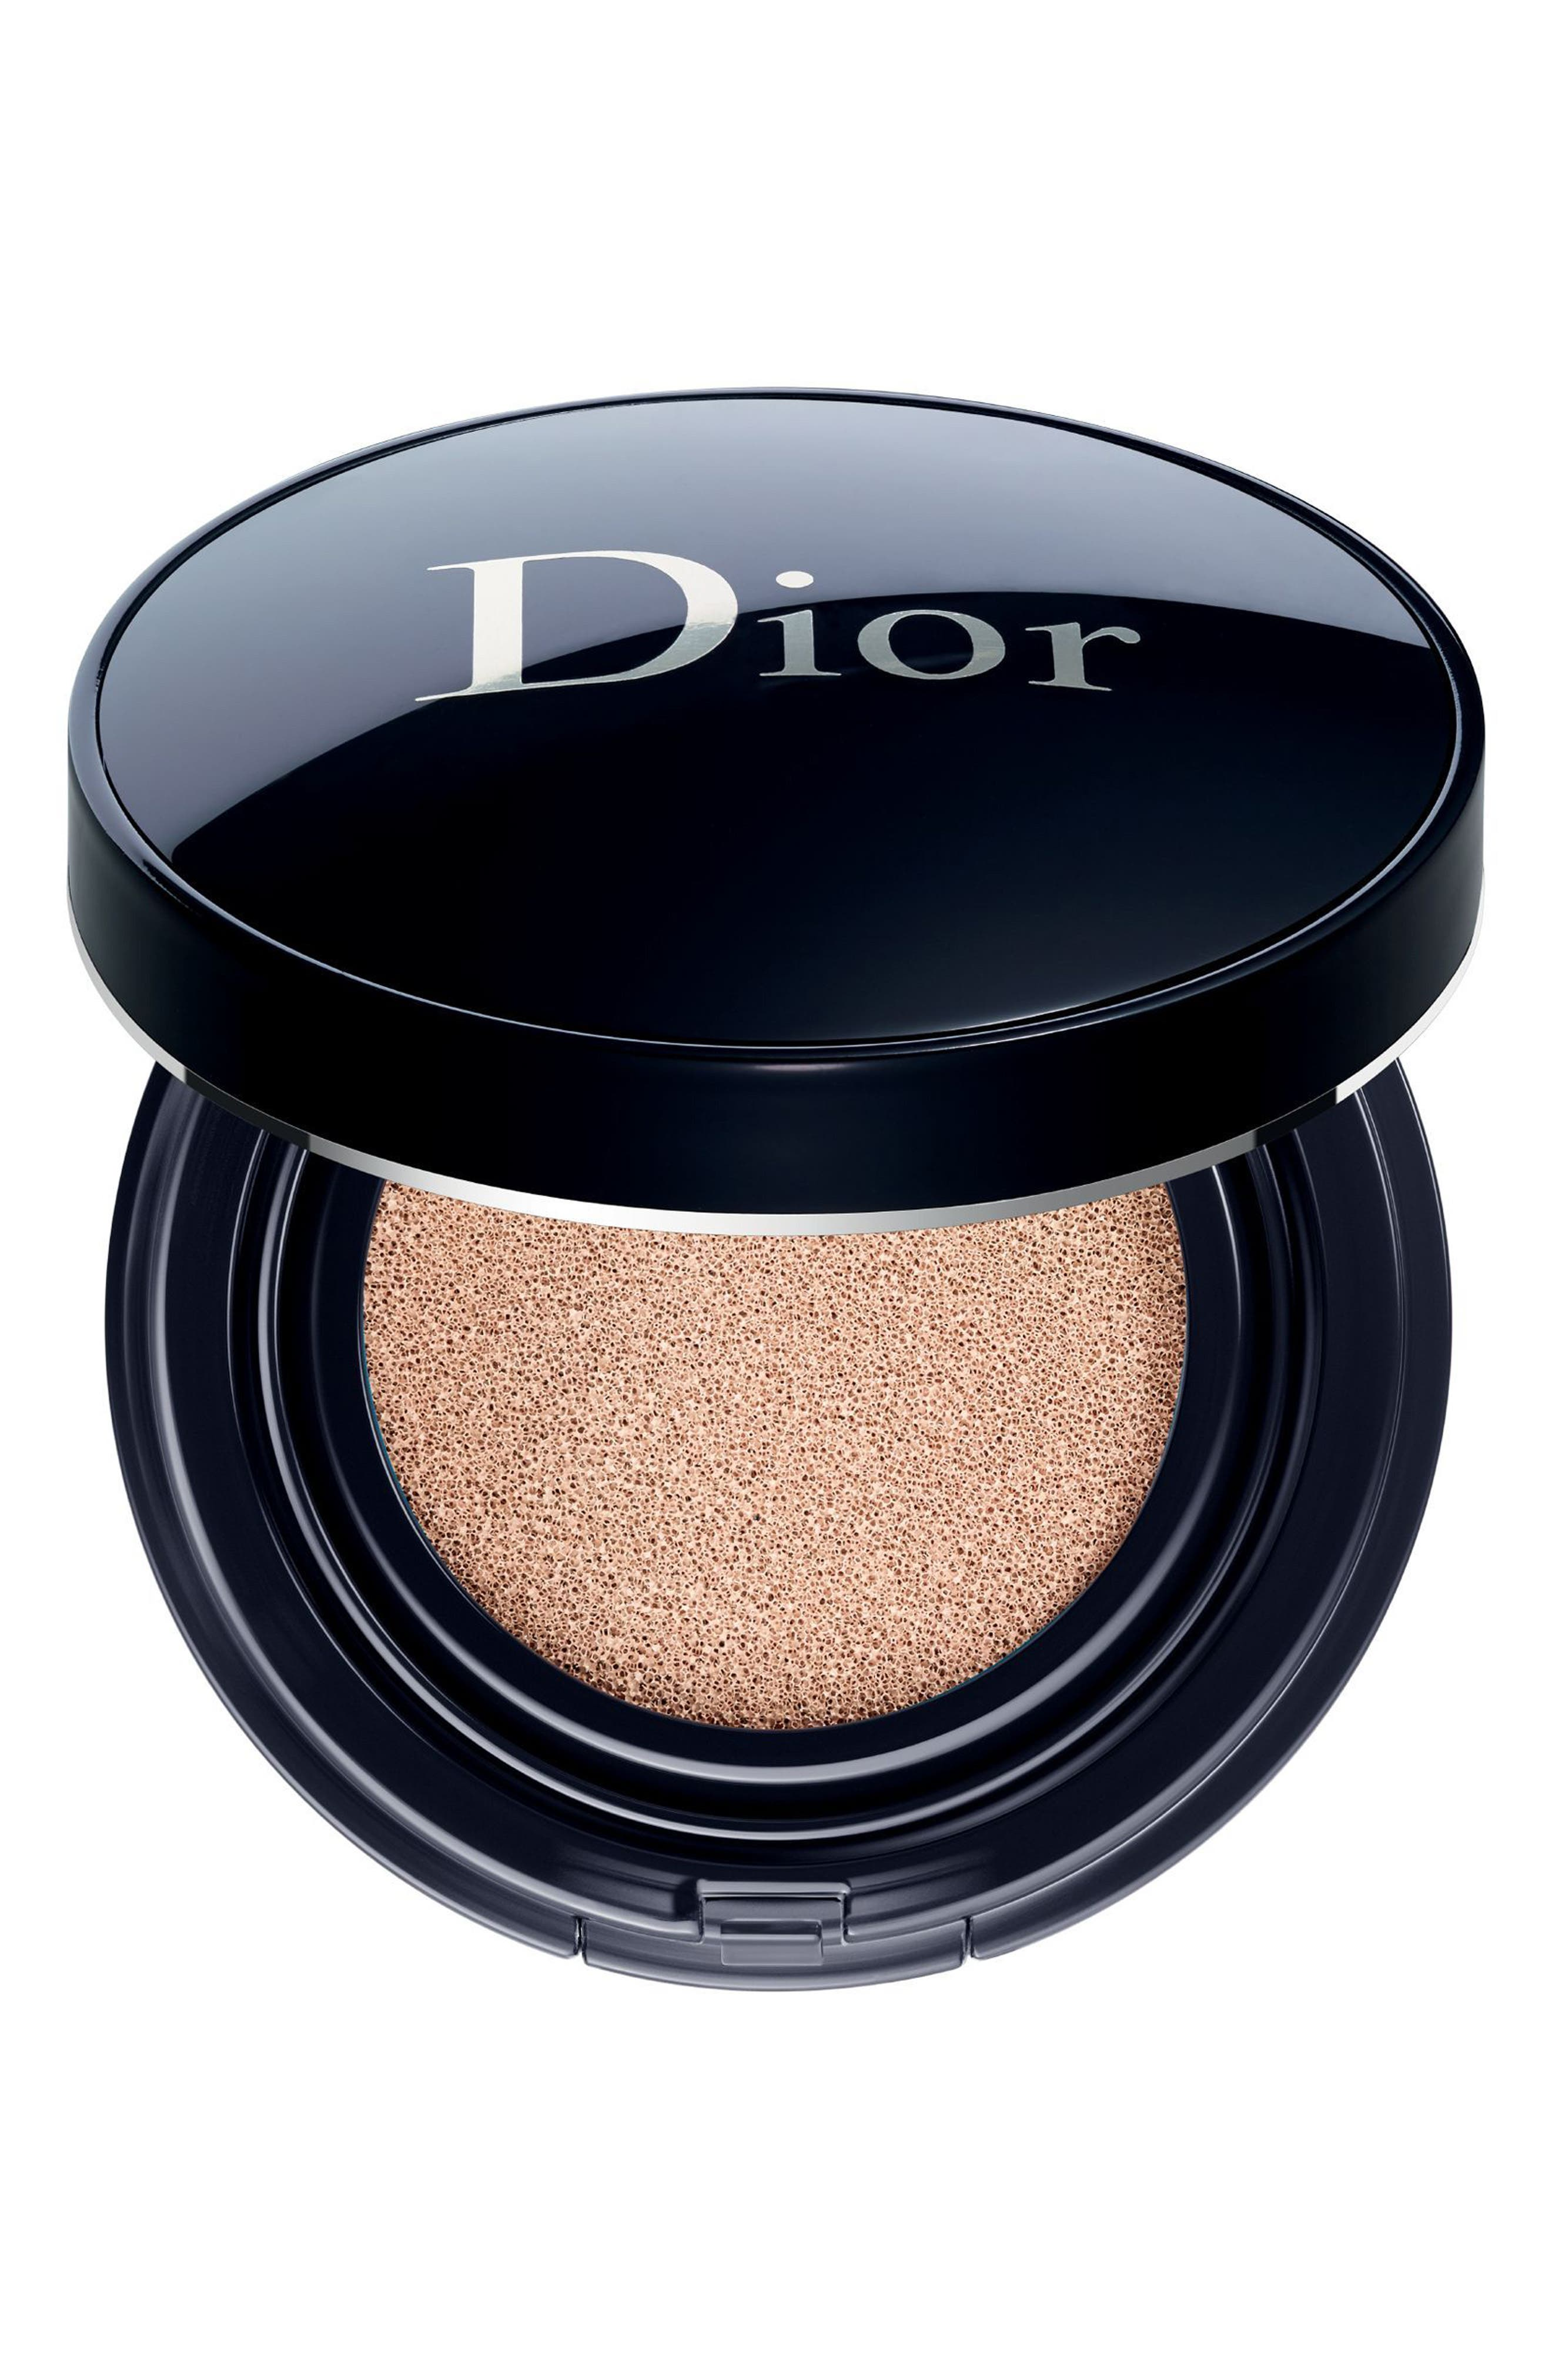 Diorskin Forever Perfect Cushion Foundation Broad Spectrum SPF 35,                         Main,                         color, 020 Light Beige